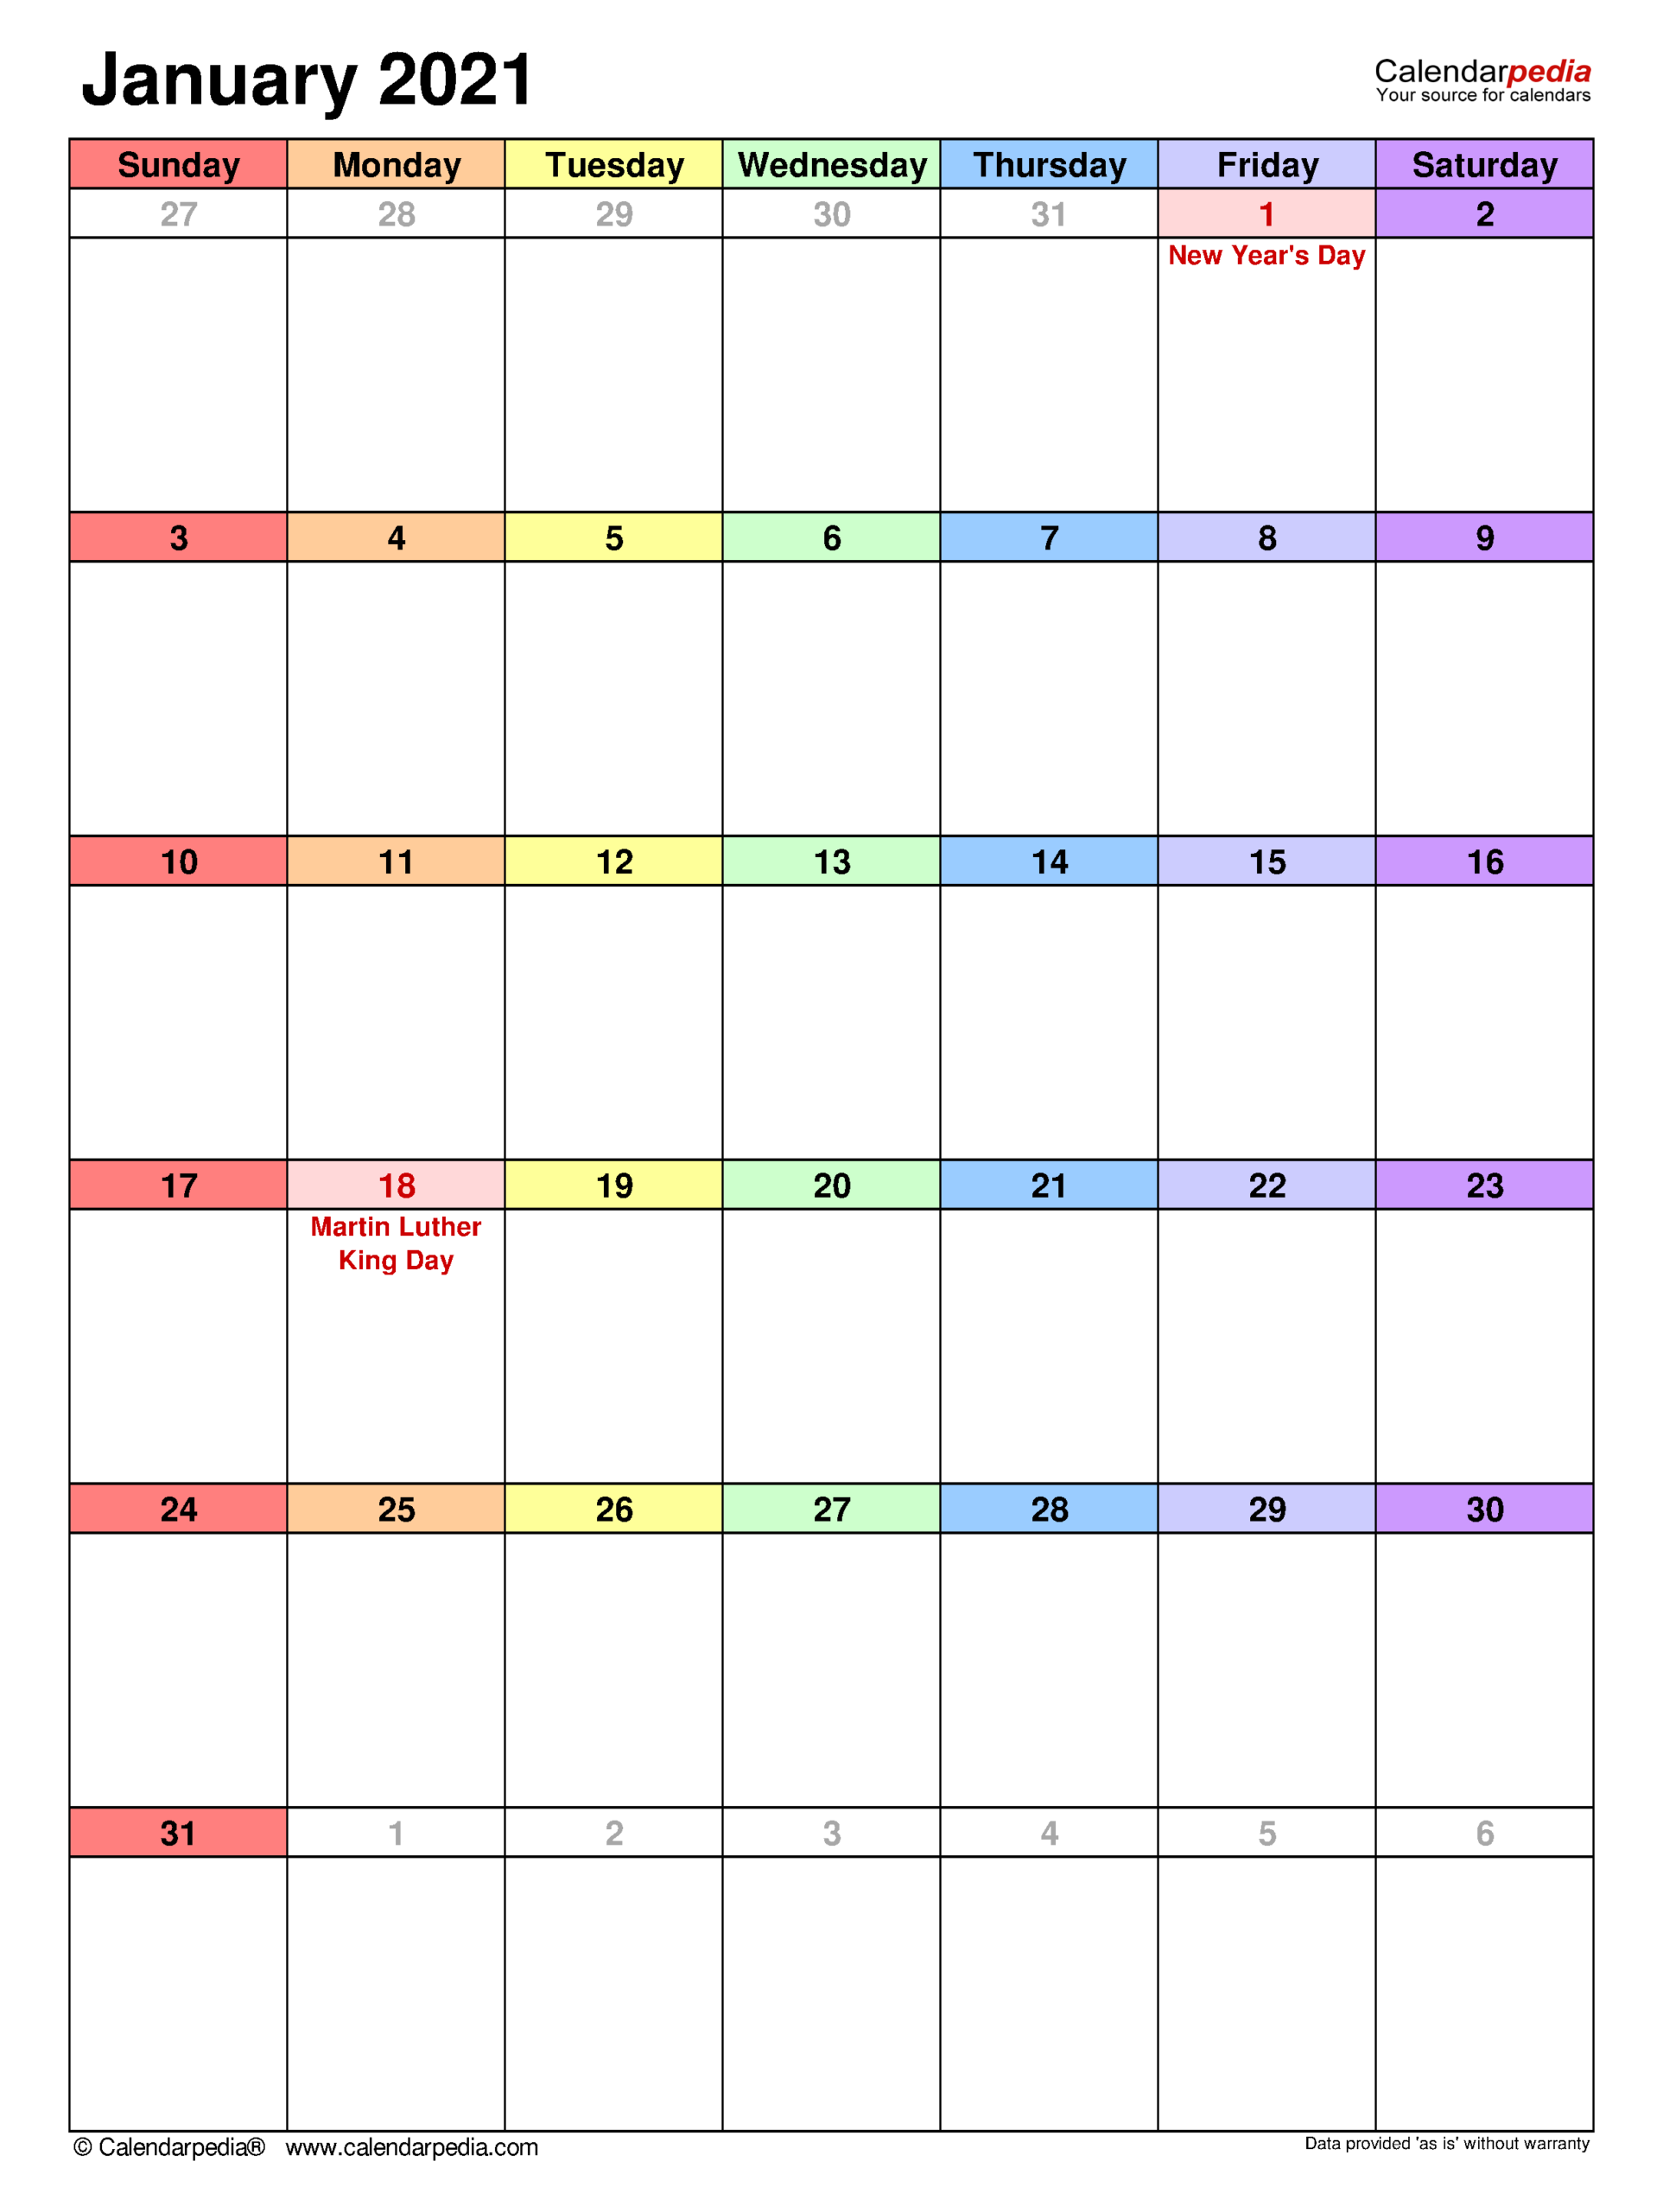 January 2021 Calendar | Templates For Word, Excel And Pdf